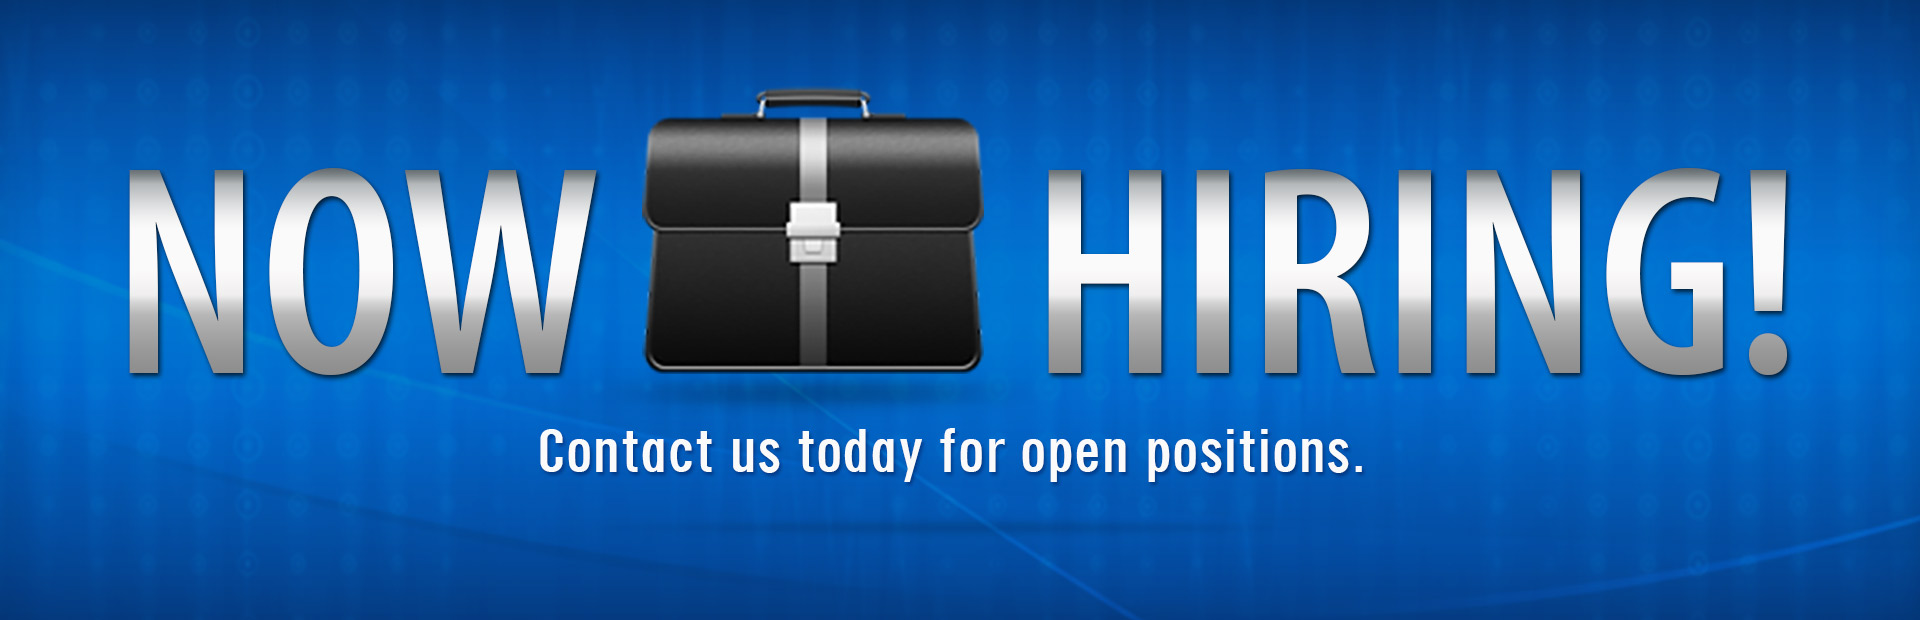 Now hiring contact us today for open positions